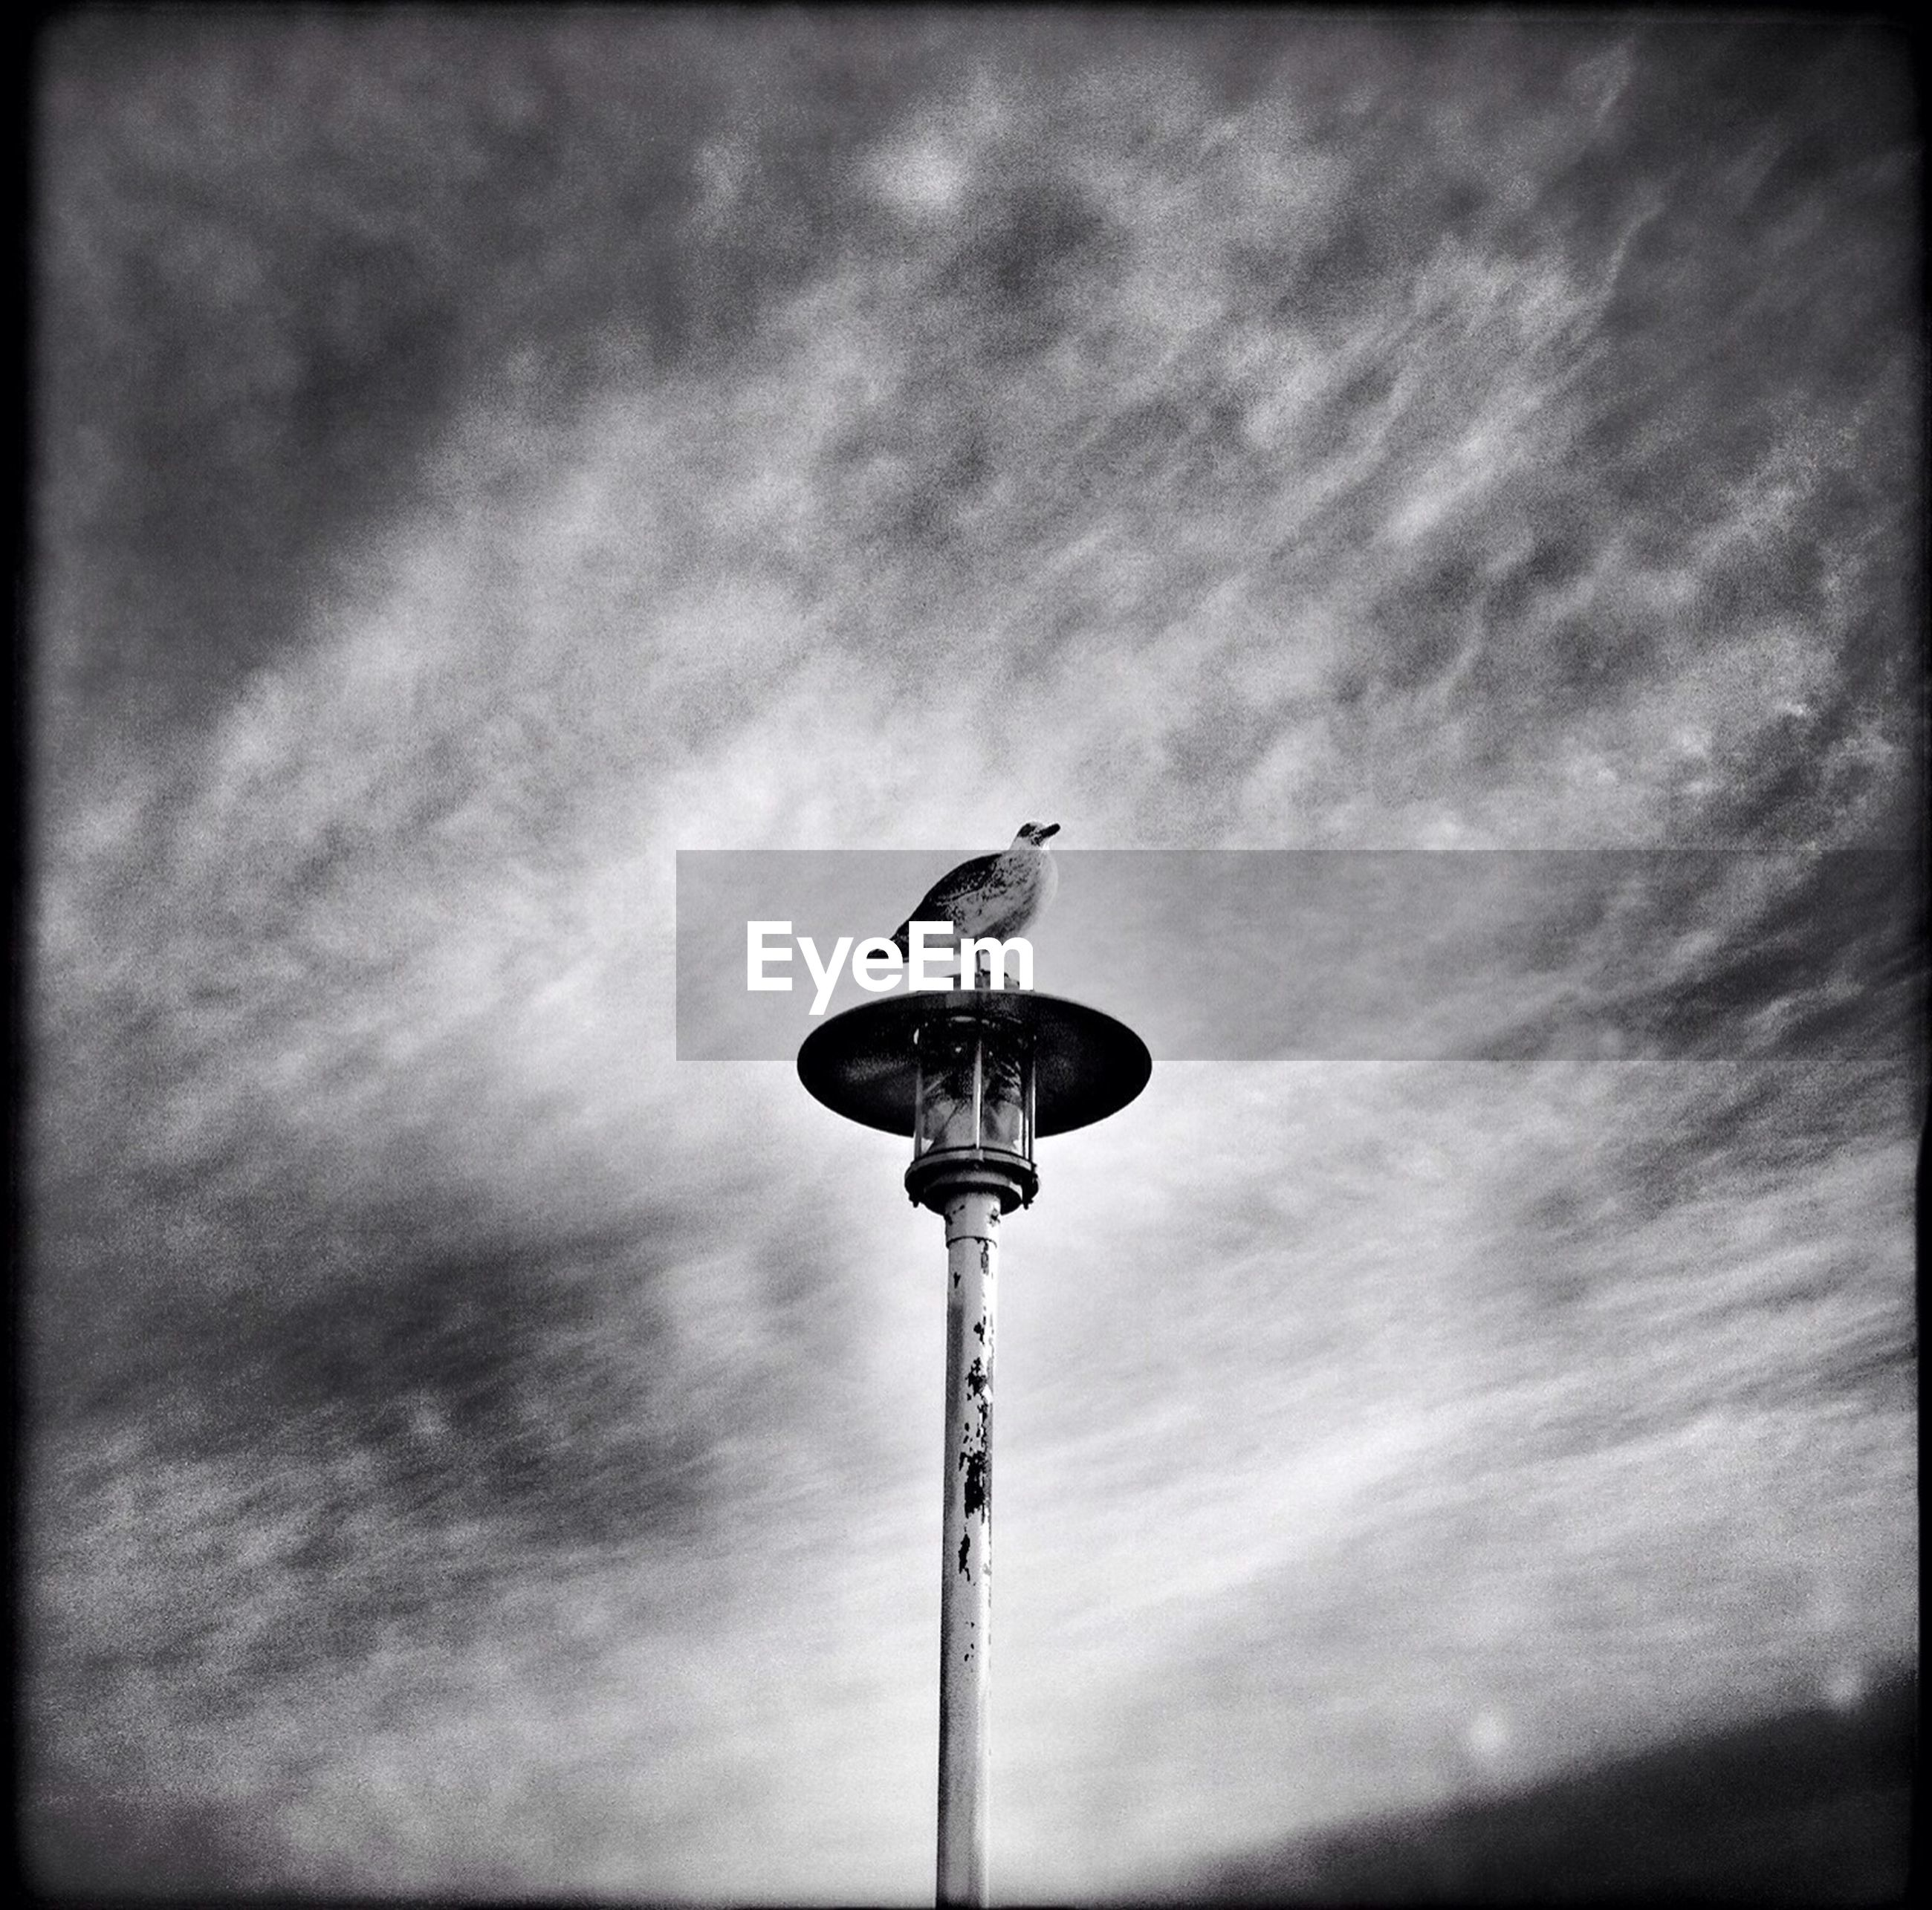 Low angle view of bird on street light against cloudy sky